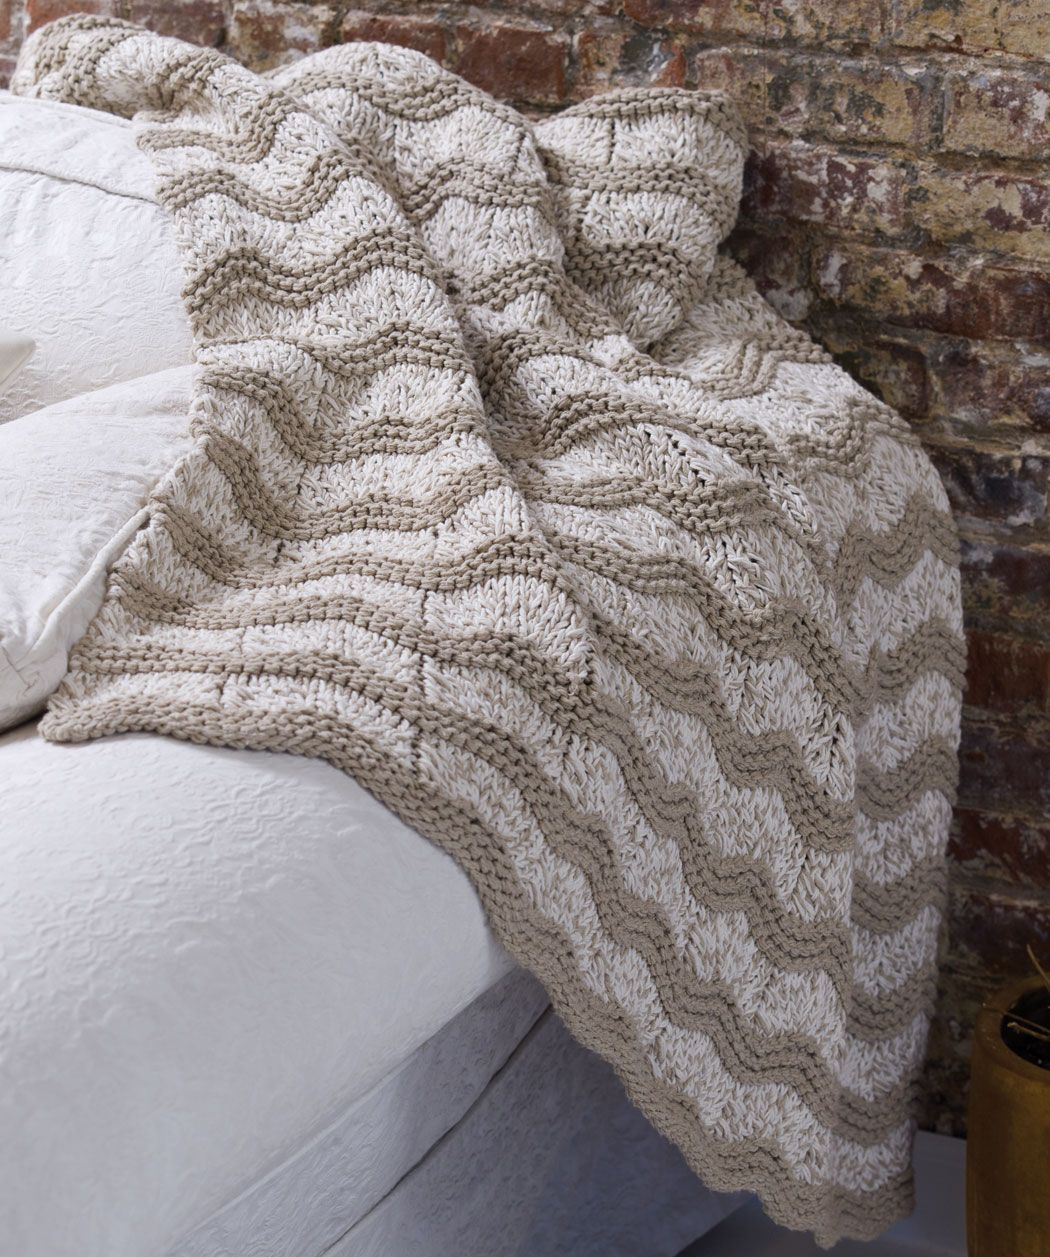 Knit Wave Afghan Knitting Pattern | Red Heart | Oops Duplicates or ...